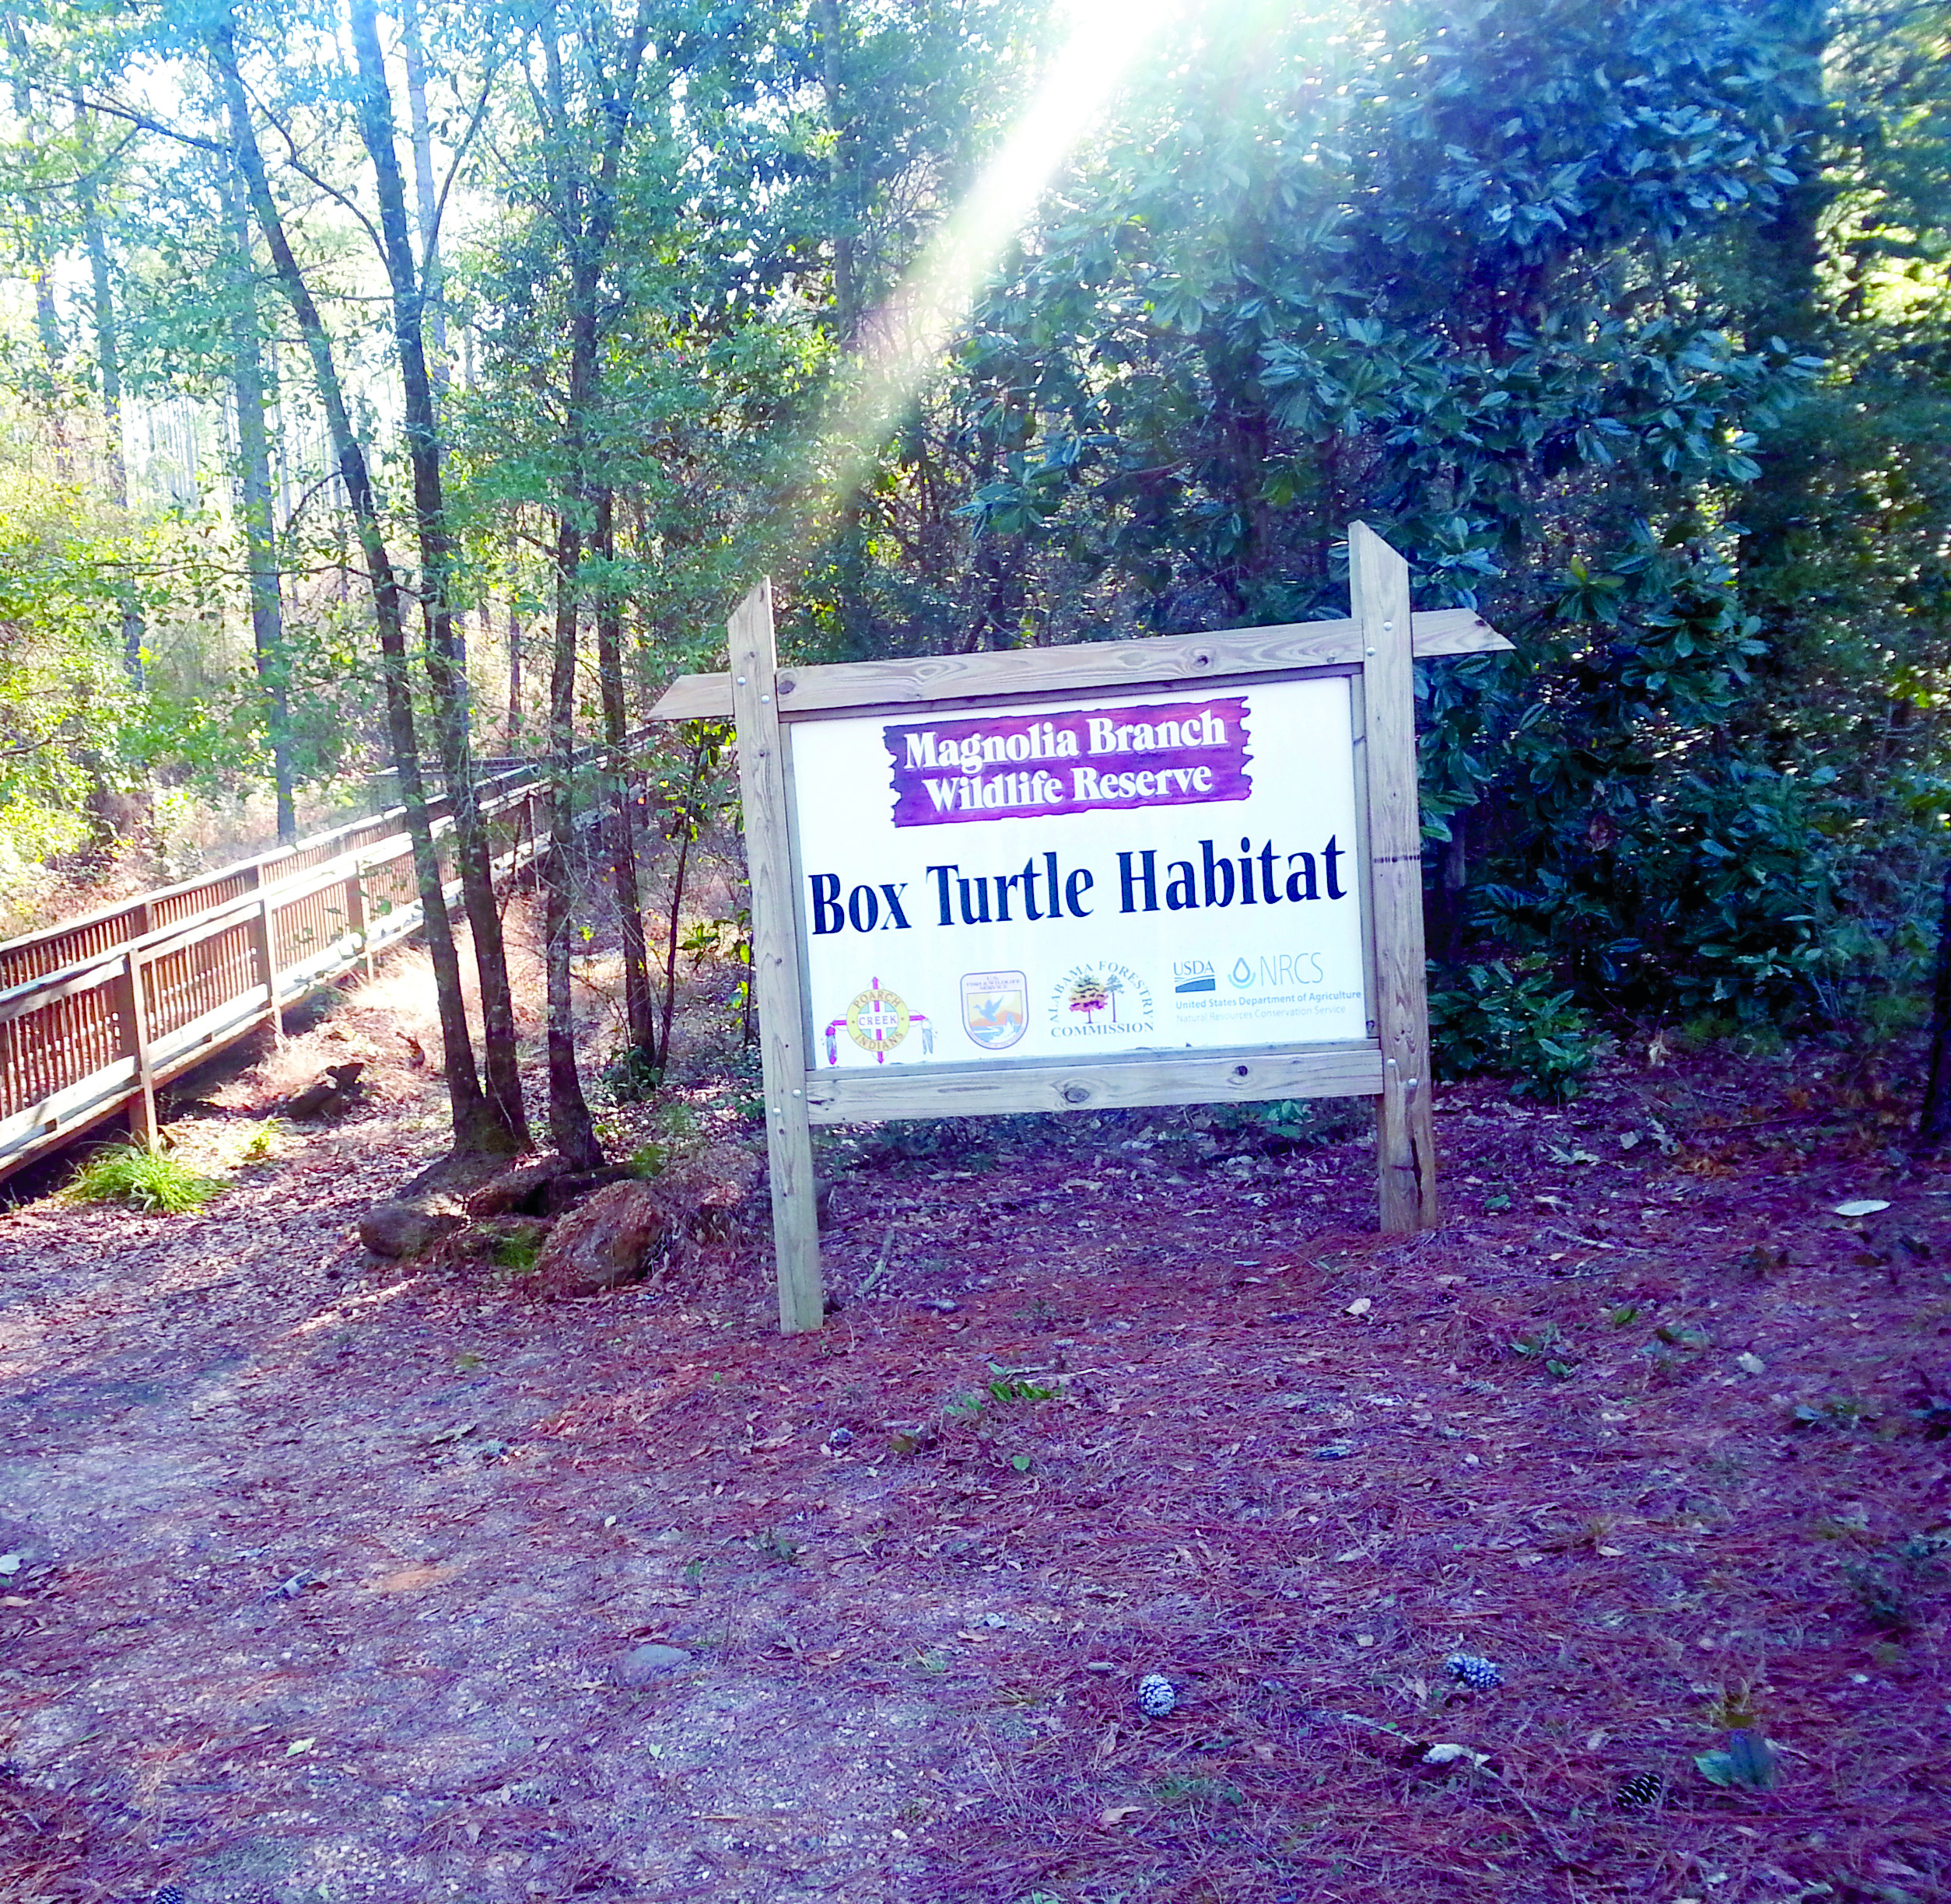 https://alabama-travel.s3.amazonaws.com/partners-uploads/photo/image/55351ed96a66c113880000d8/bo_turtle_habitat.jpg